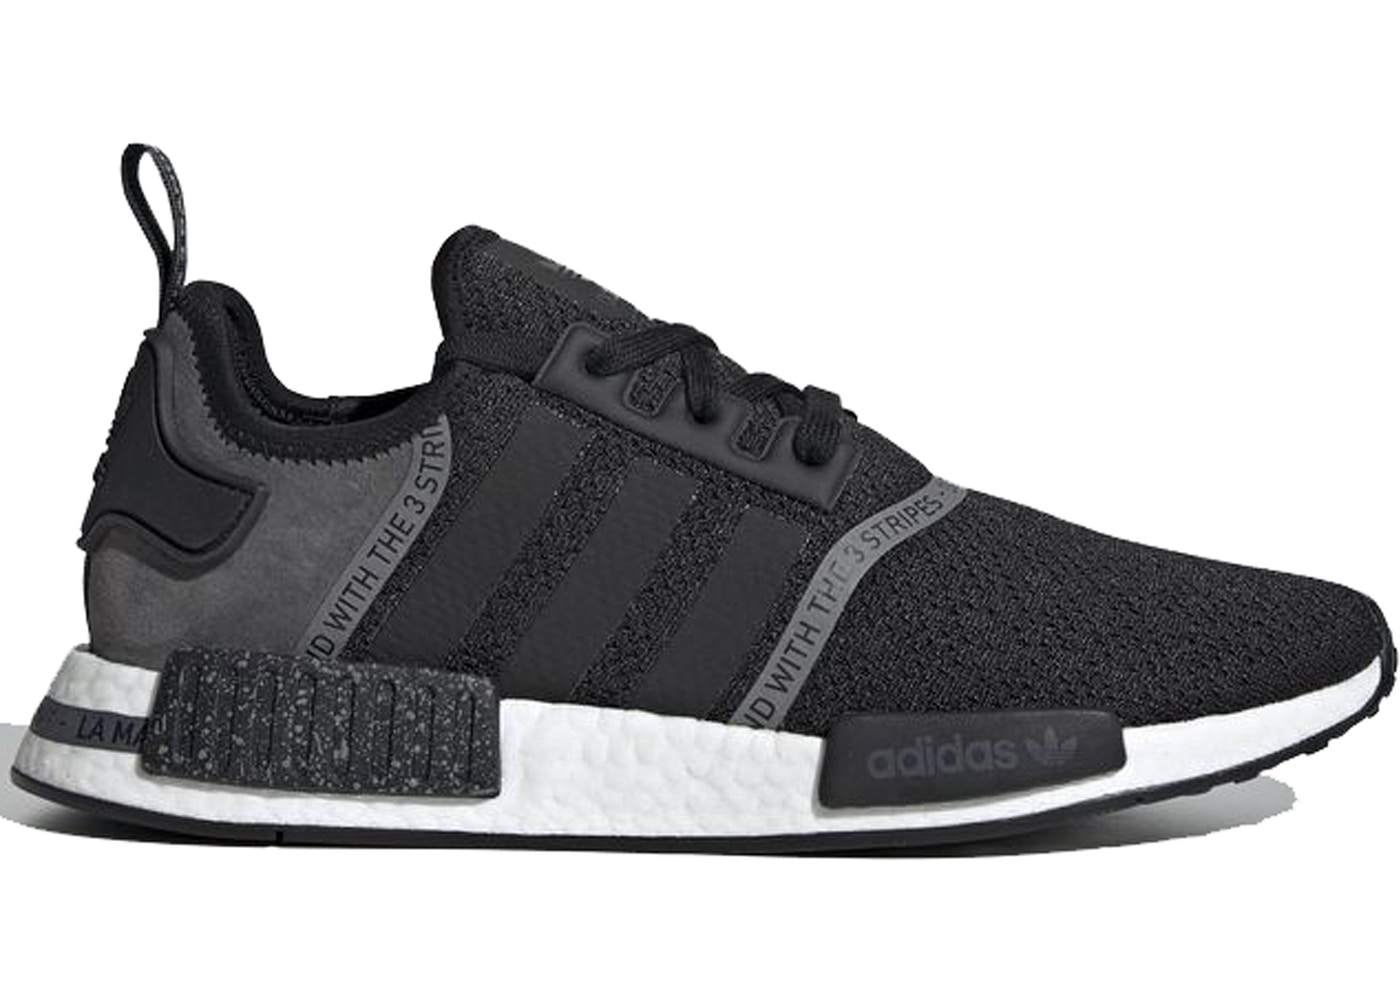 adidas nmd r1 white black speckle